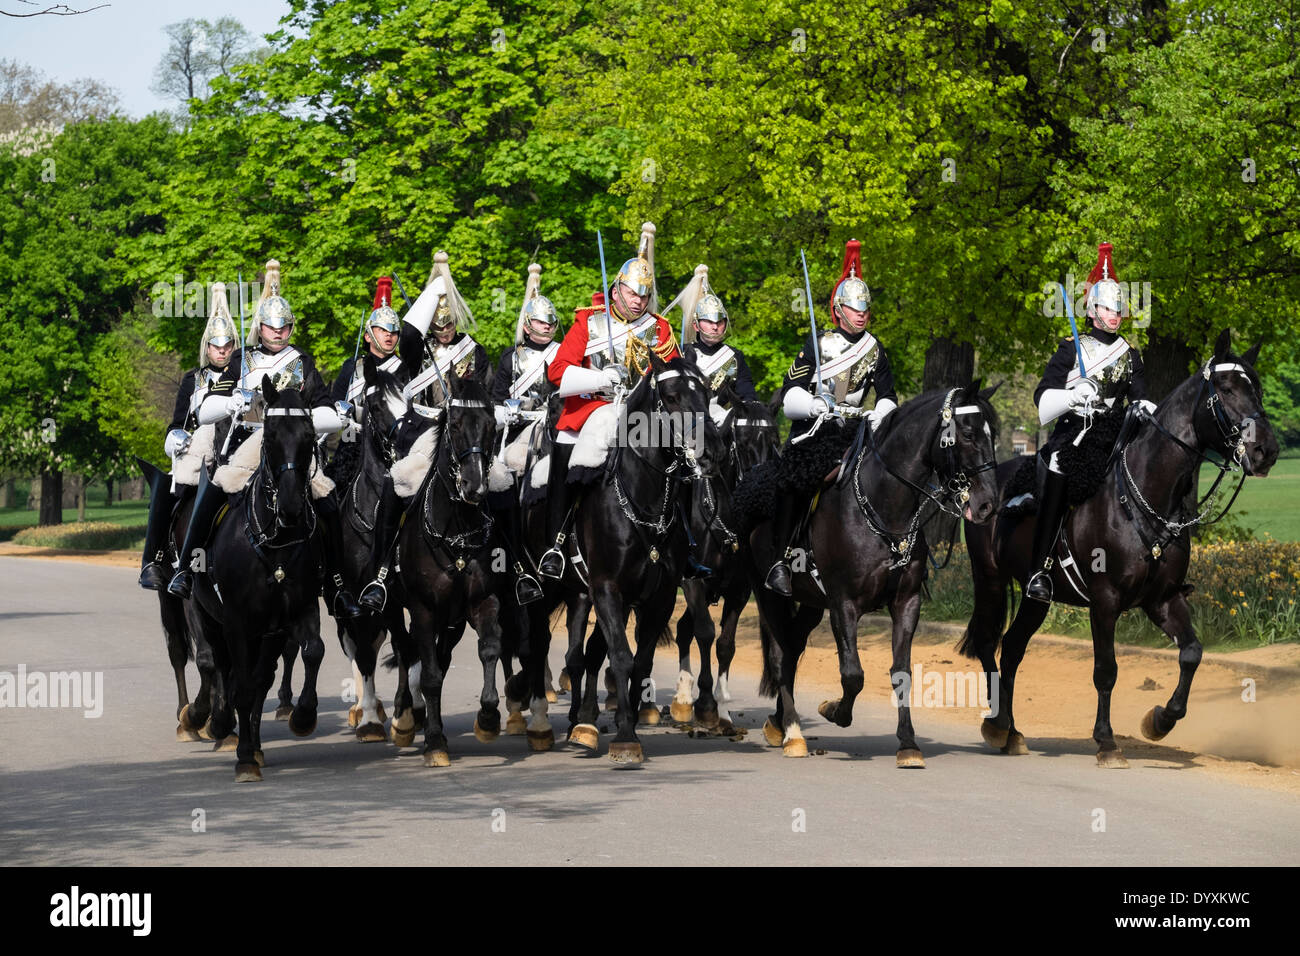 Mounted Household Cavalry soldiers on horseback in Hyde Park London United Kingdom Stock Photo